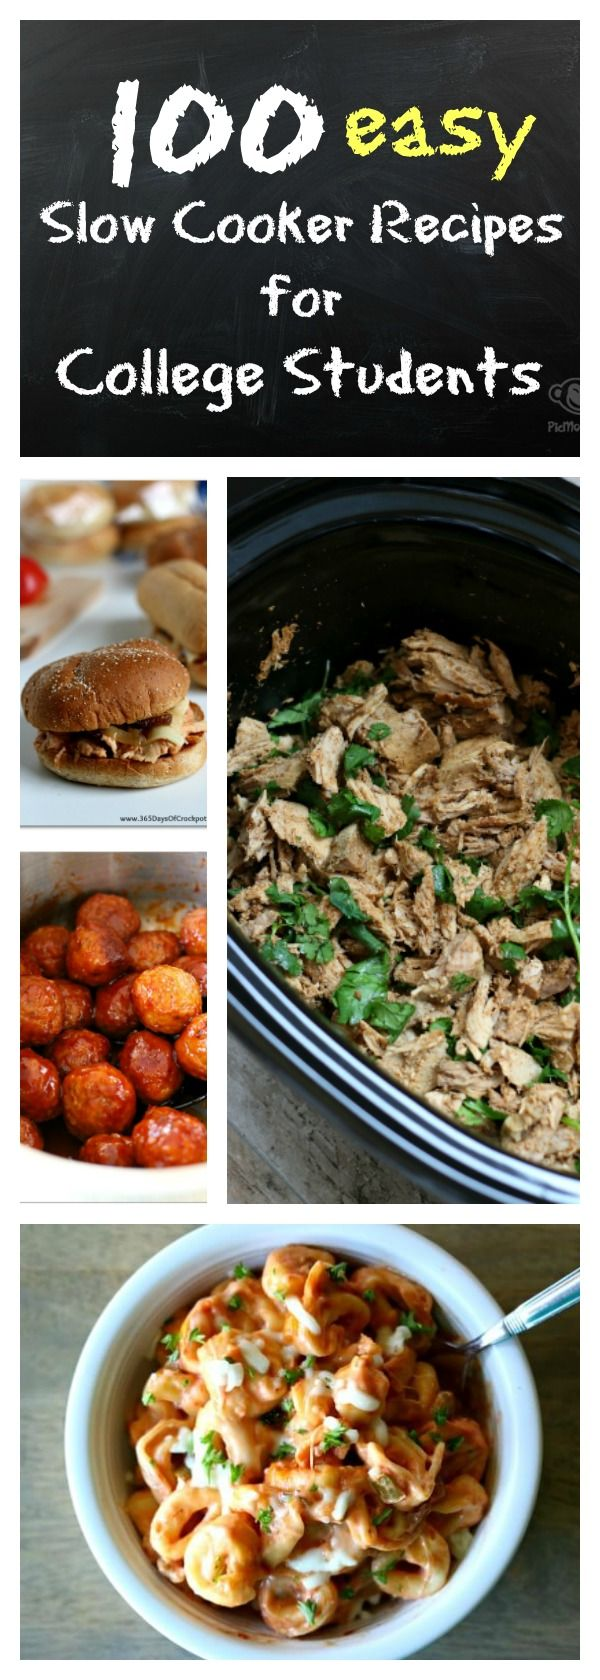 How to eat healthy on a student budget eating healthy budget 100 slow cooker recipes for college students ccuart Image collections